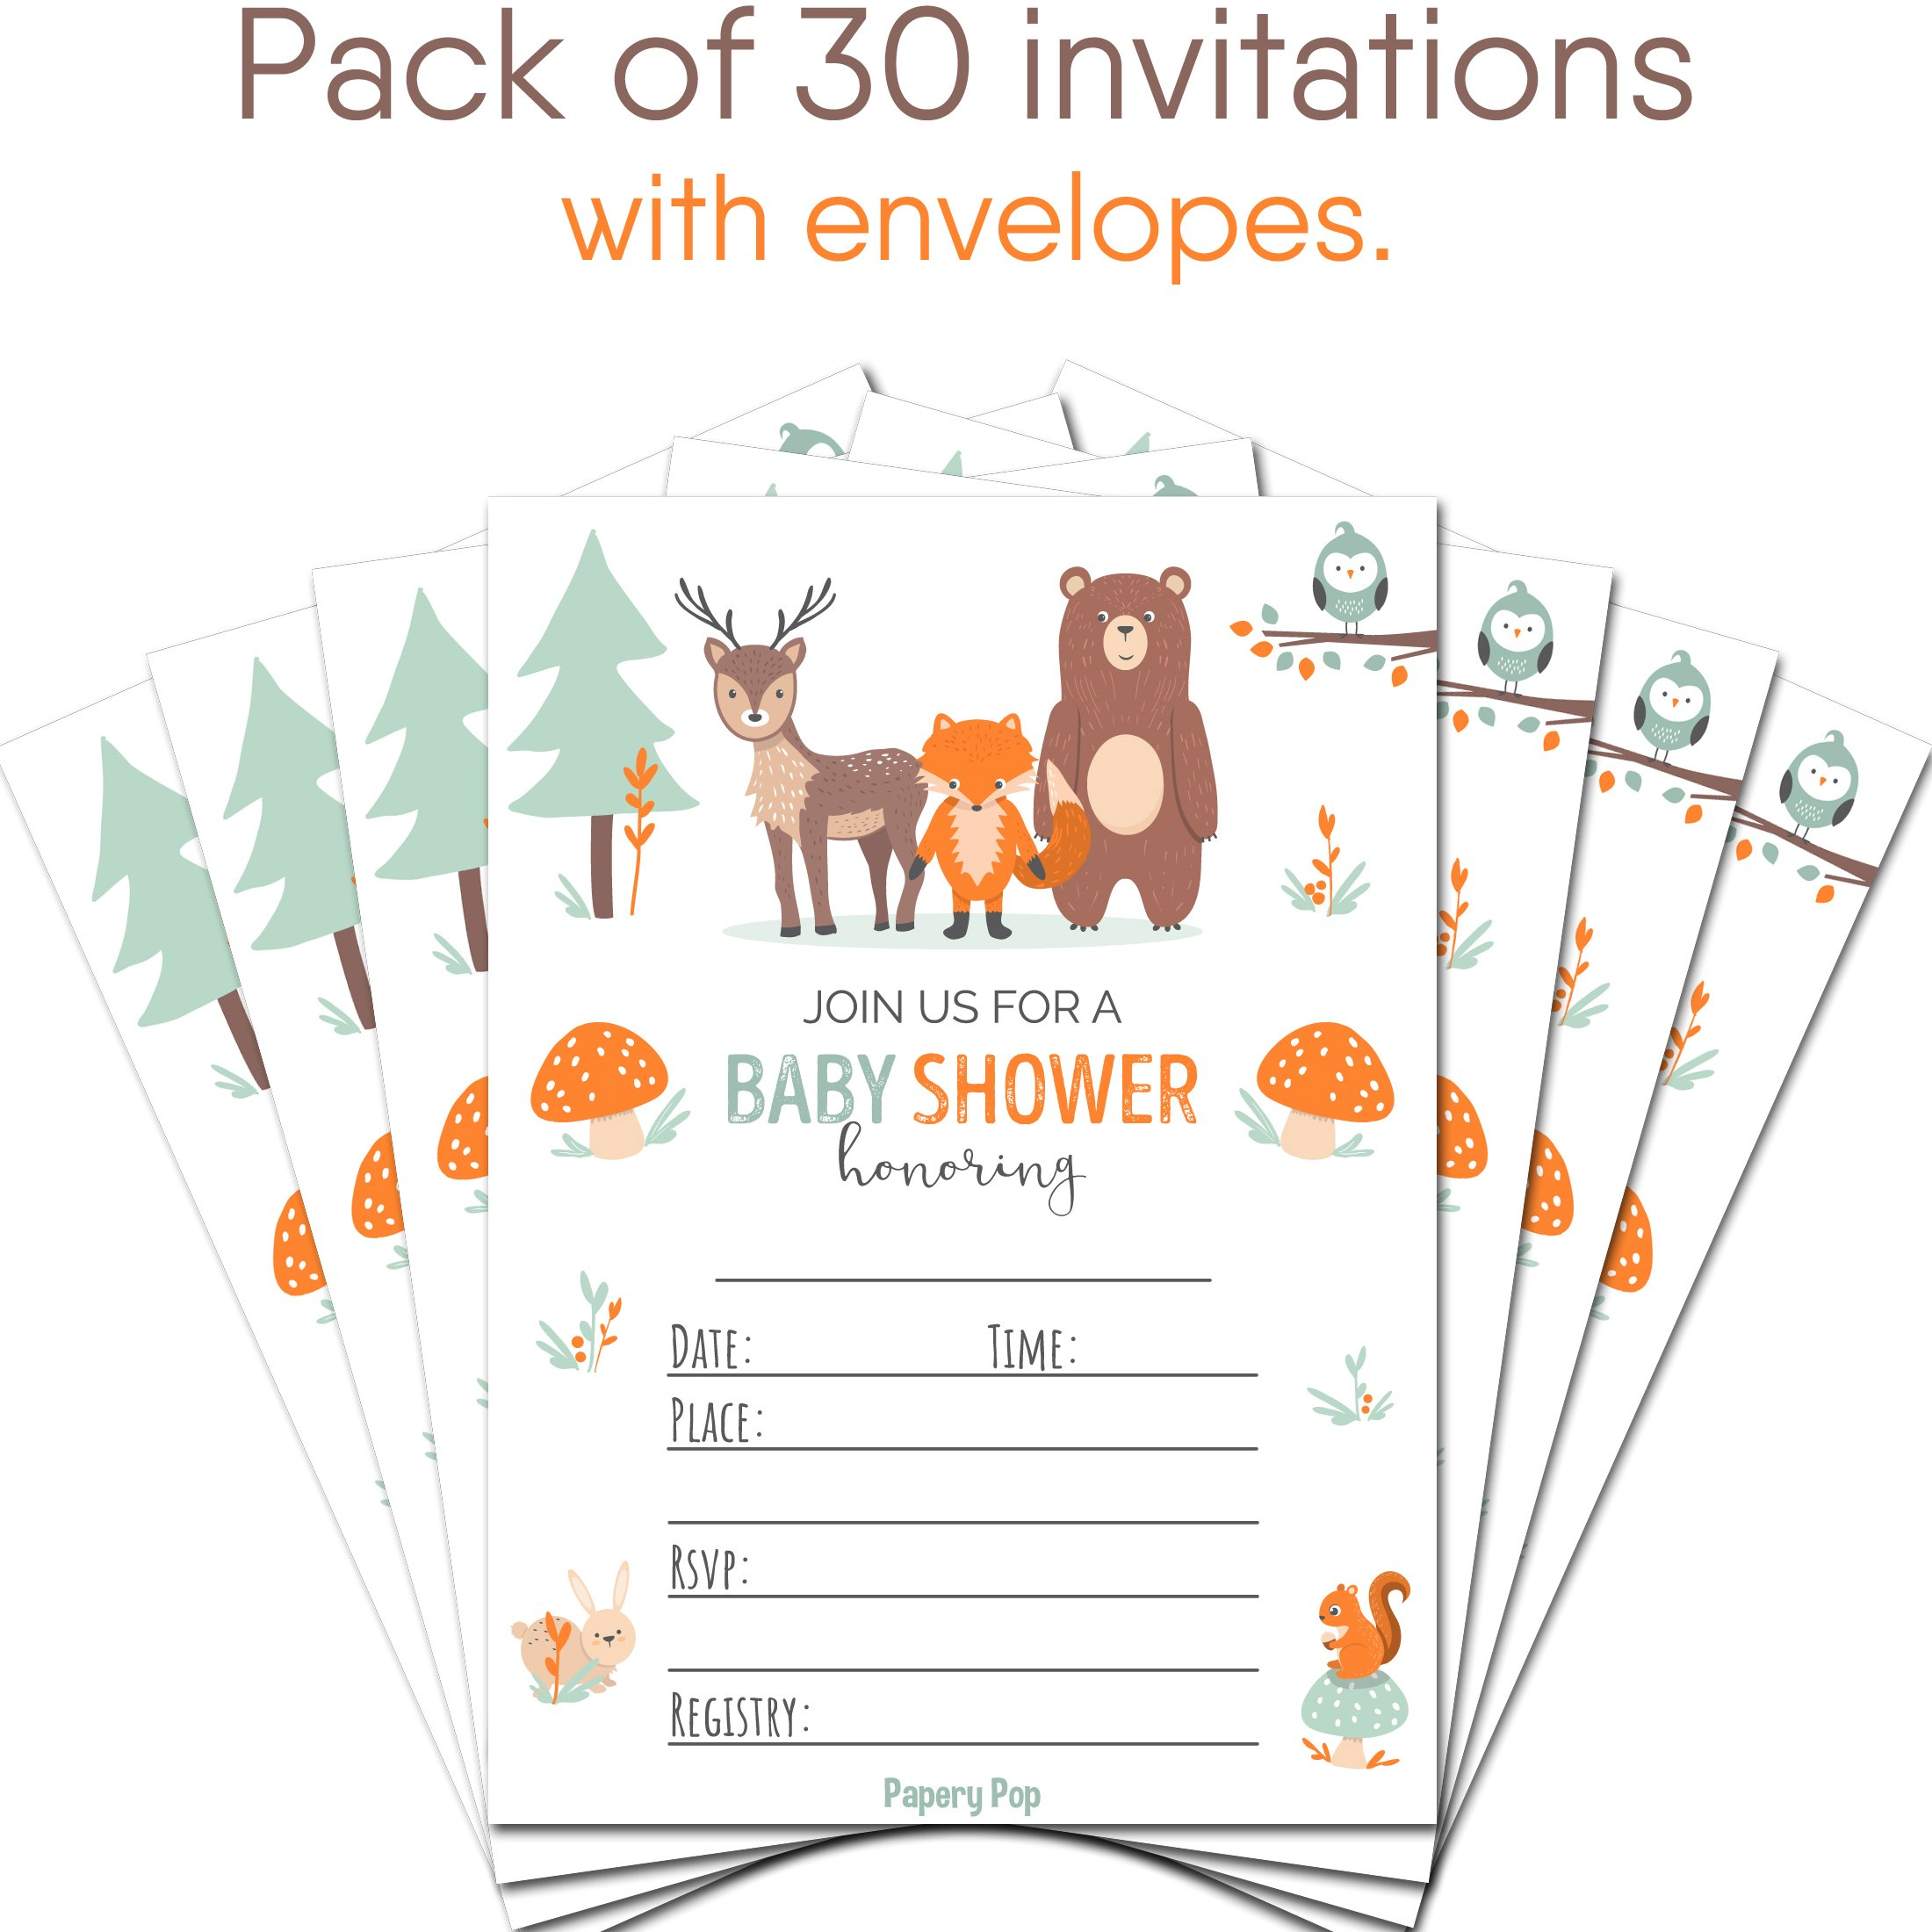 Papery Pop 30 Baby Shower Invitations Boy or Girl with Envelopes (30 Pack) - Gender Neutral - Fits Perfectly with Woodland Animals Baby Shower Decorations and Supplies by Papery Pop (Image #2)